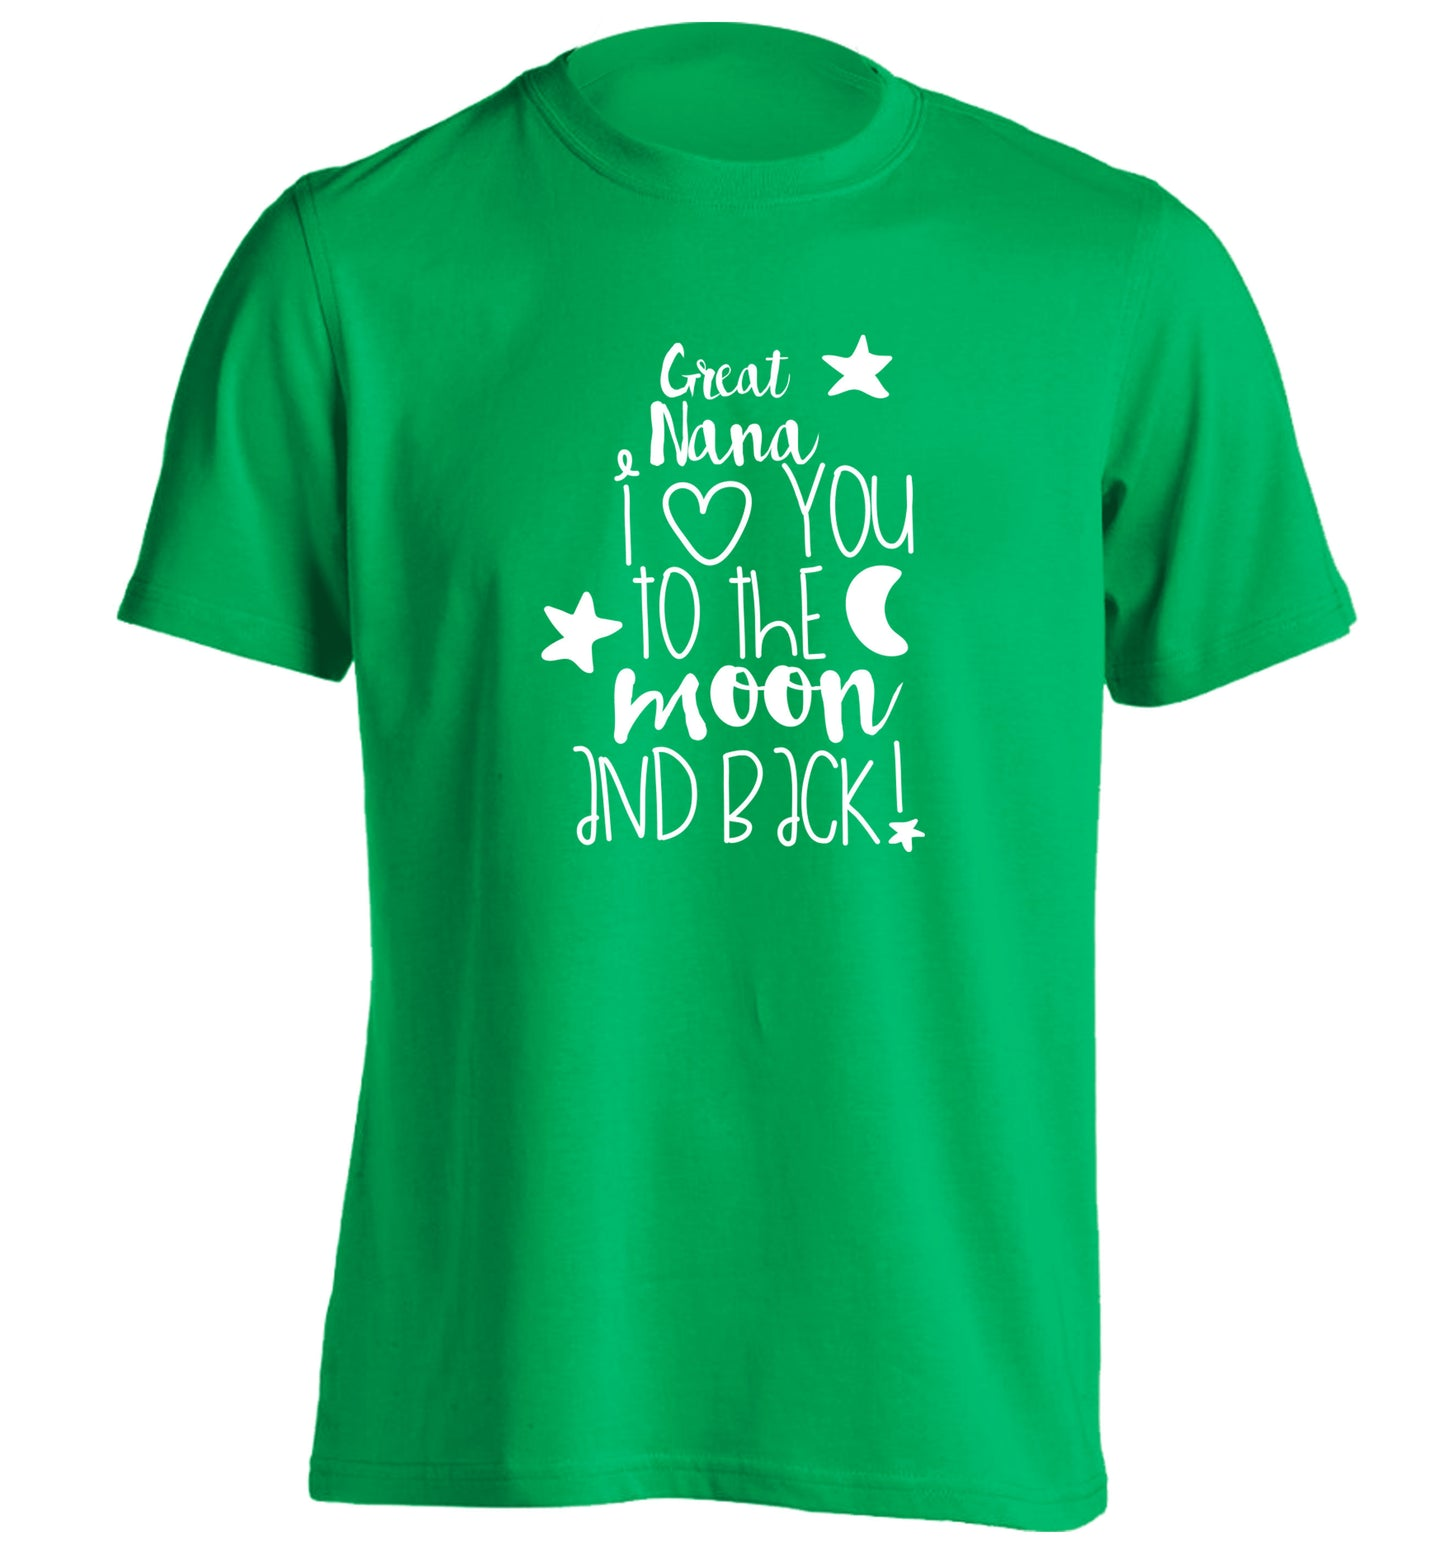 Great Nana I love you to the moon and back adults unisex green Tshirt 2XL